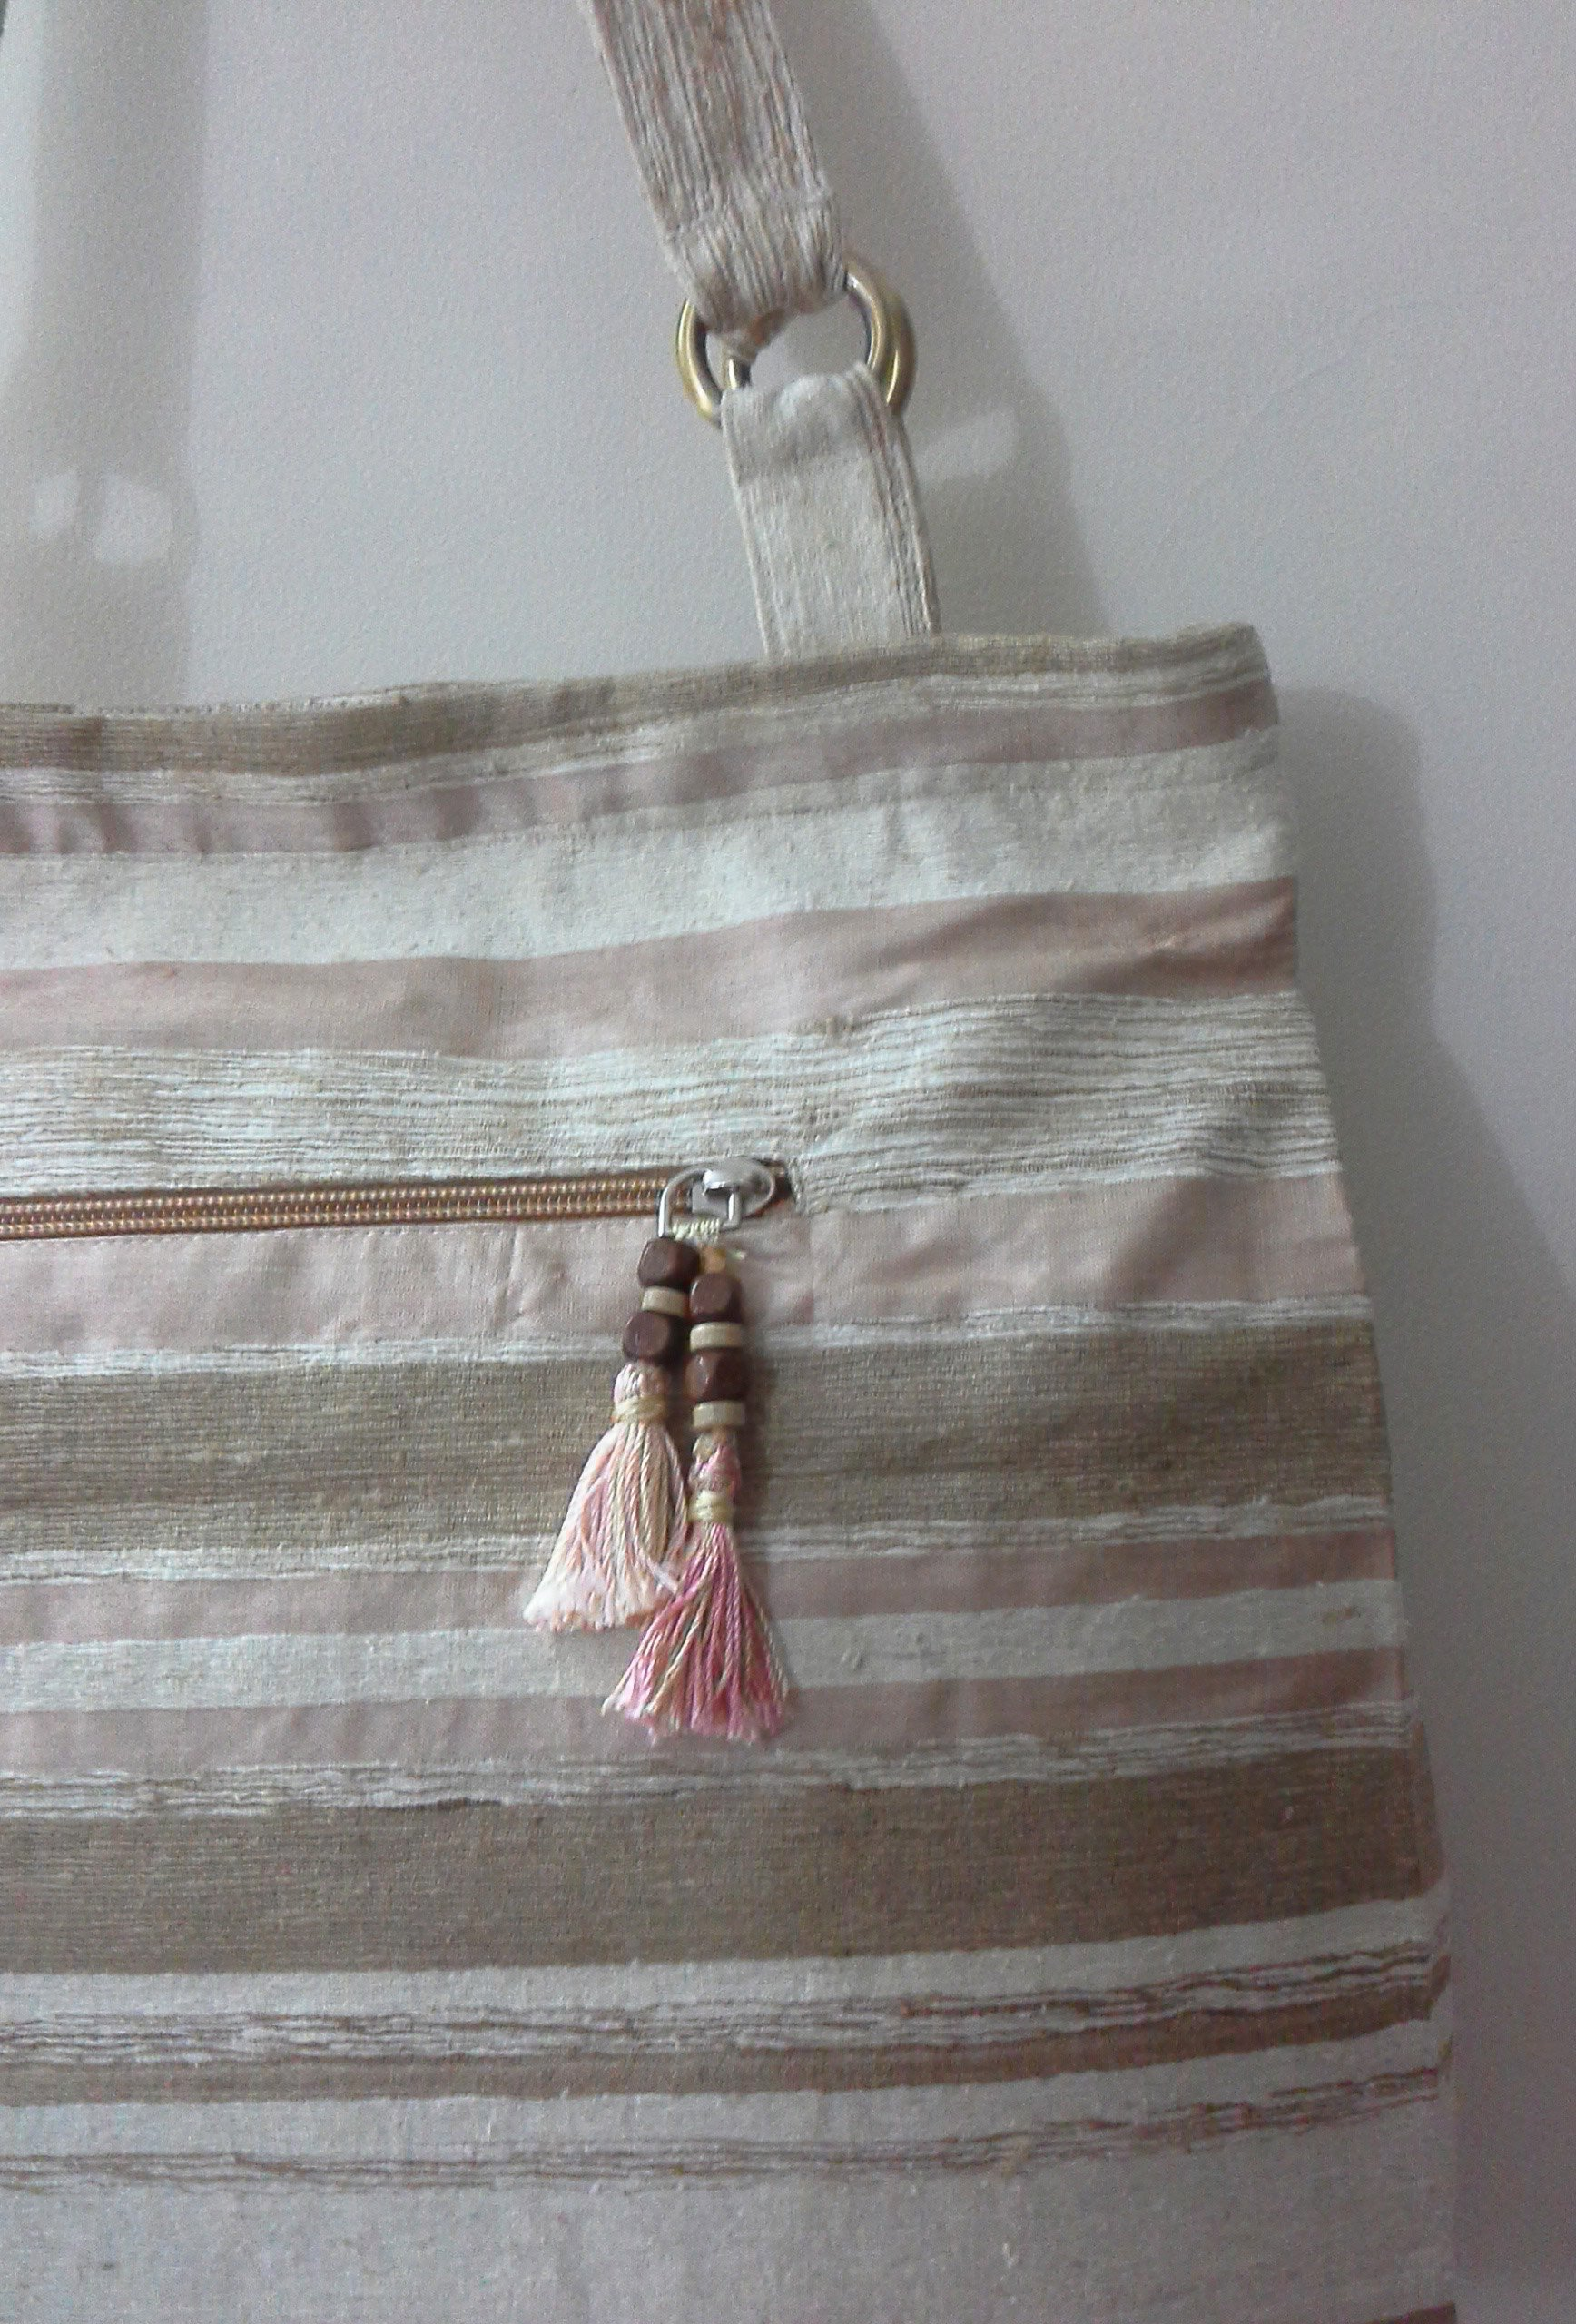 Panigha India Handmade Textured Silk Fabric Bag in Natural tones with Hand Embroidery - handmade-bags